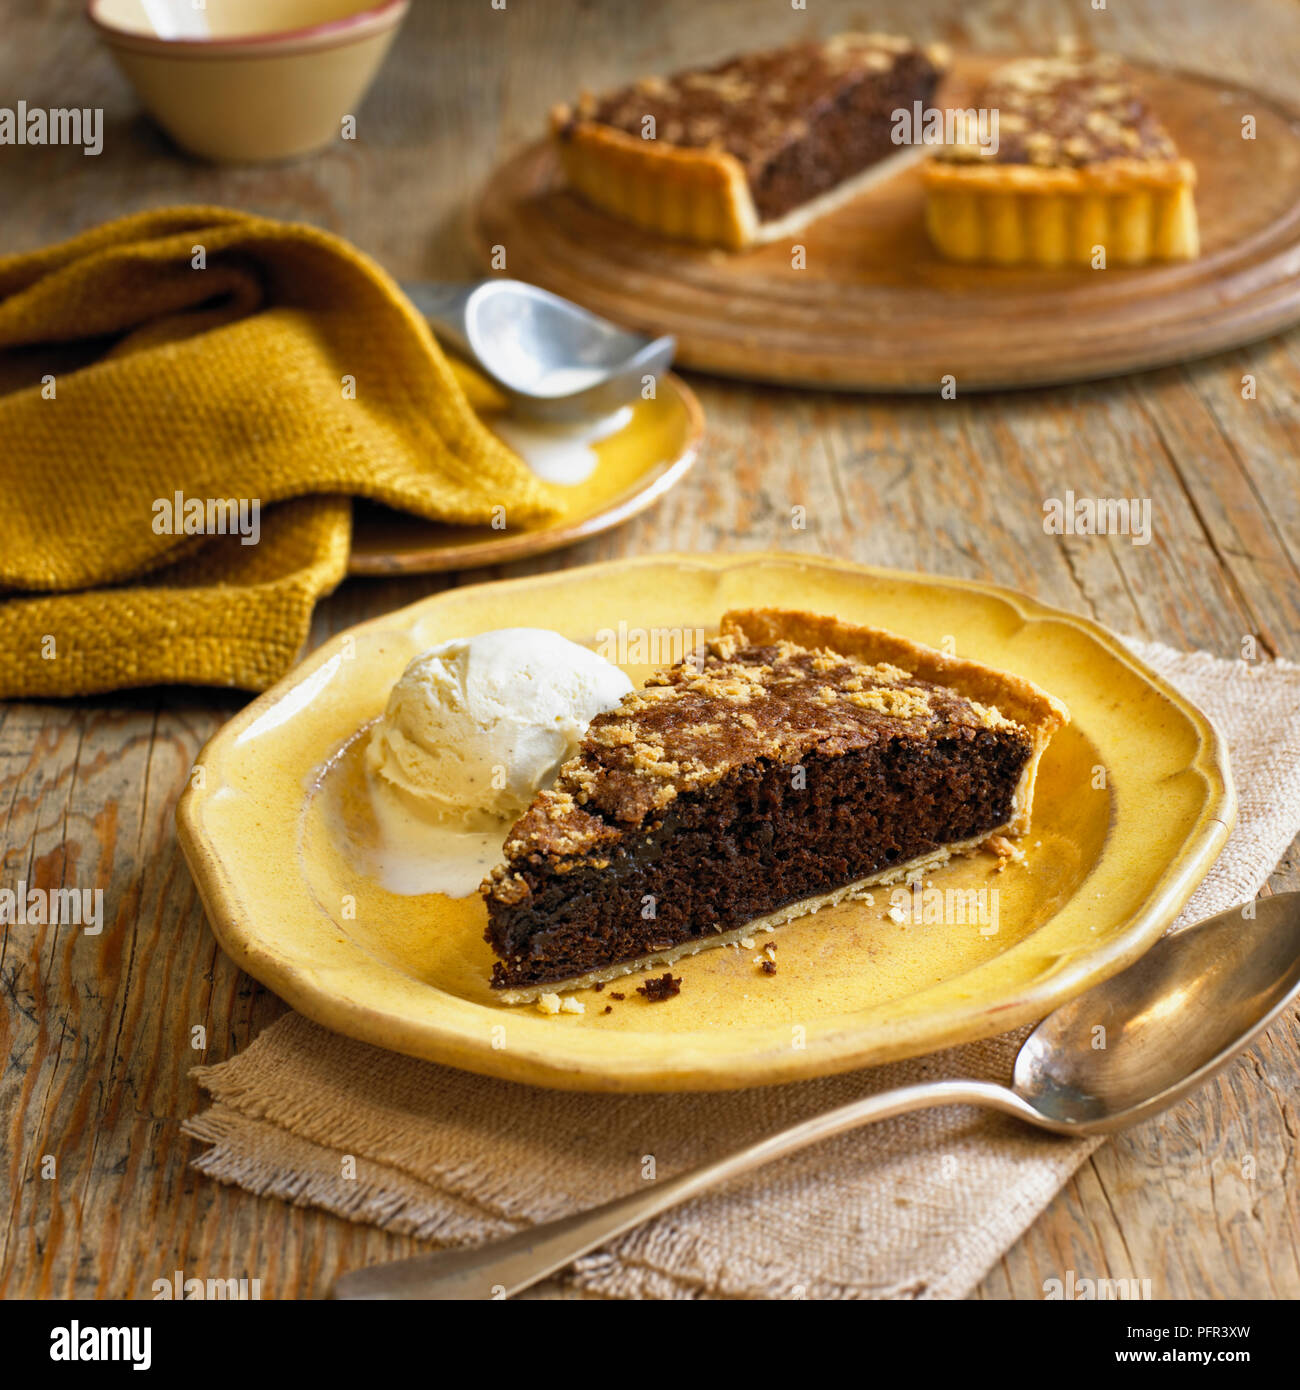 Shoo fly pie with ice cream on a plate, spoon nearby - Stock Image